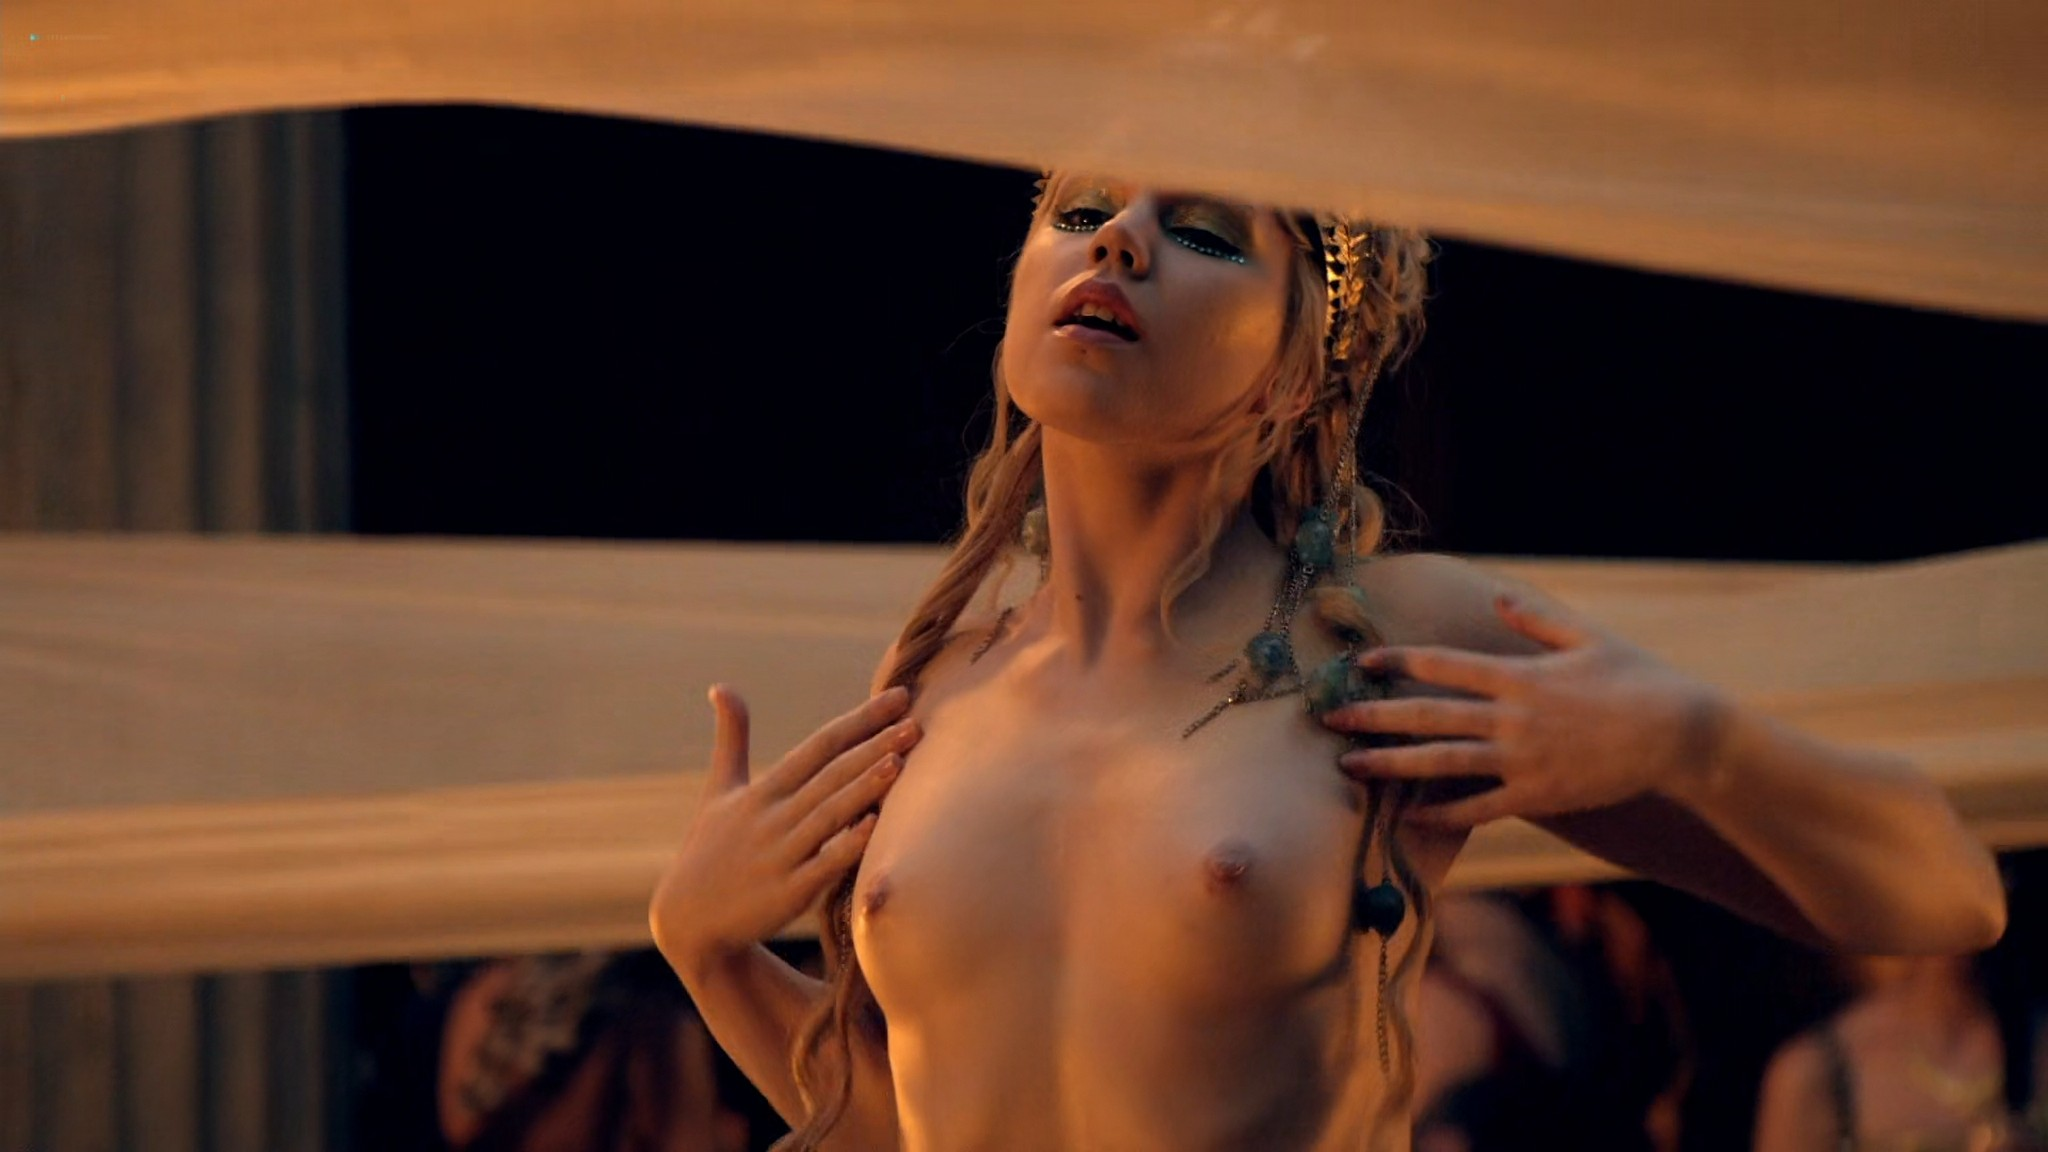 Viva Bianca nude Lucy Lawless nude sex others nude - Spartacus - Vengeance (2012) e4 1080p BluRay (15)